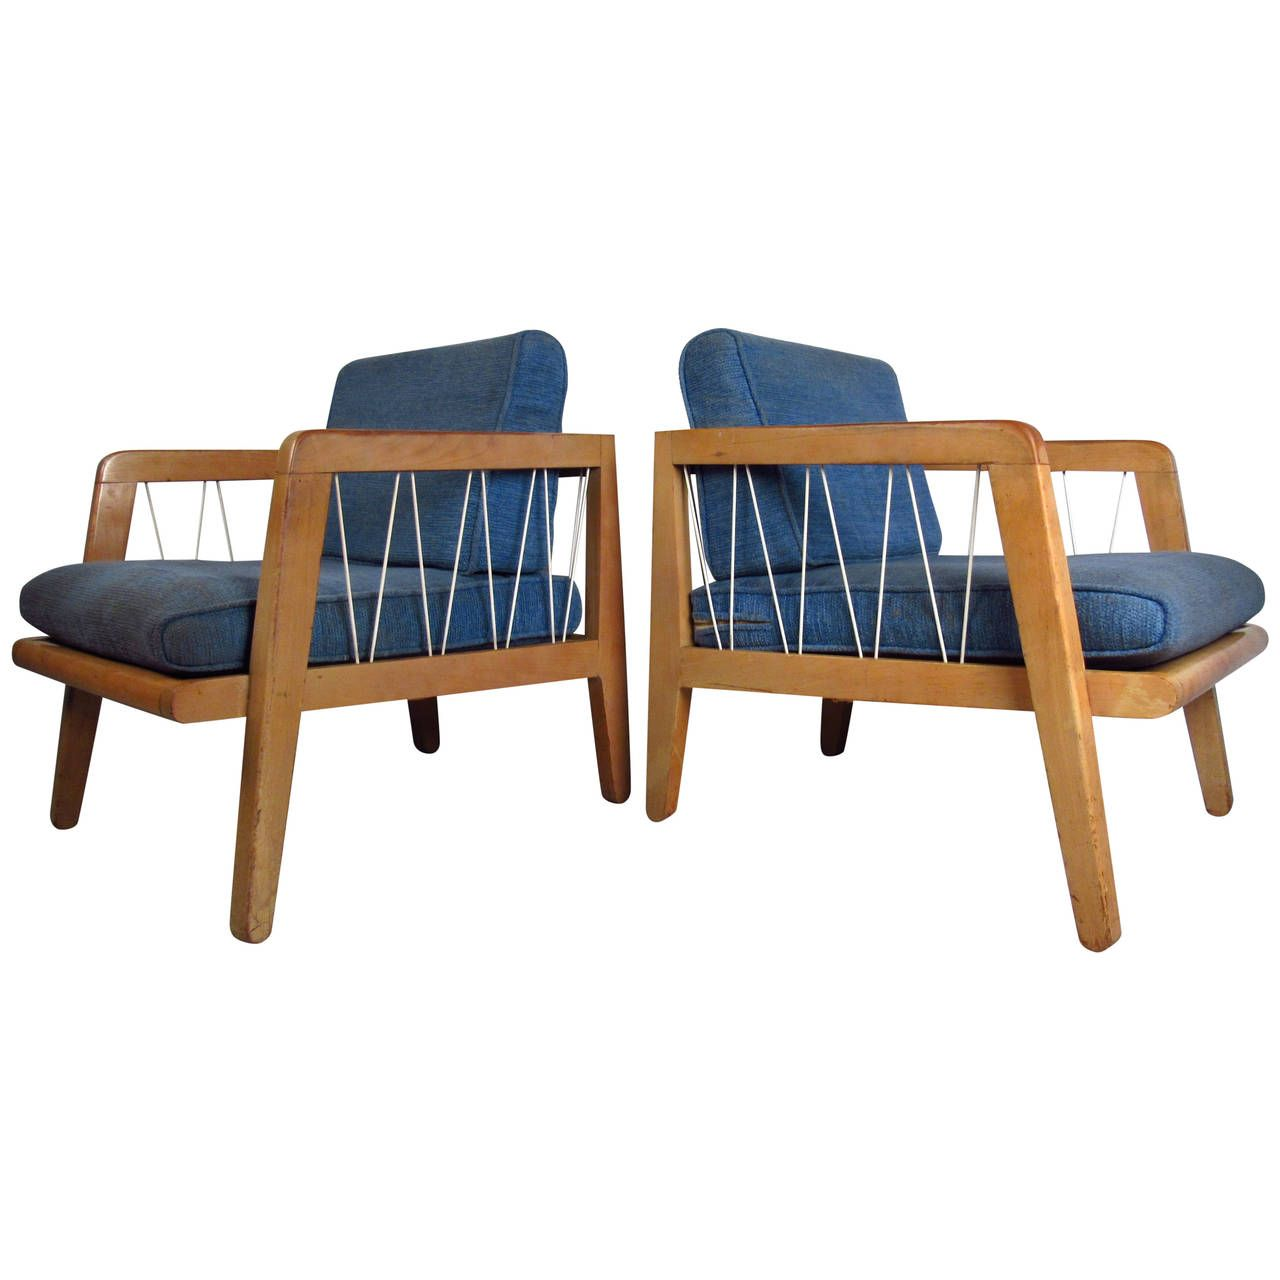 Pair Of Mid Century Russel Wright Style Rope Frame Chairs 1stdibs Com Russel Wright Chair Furniture